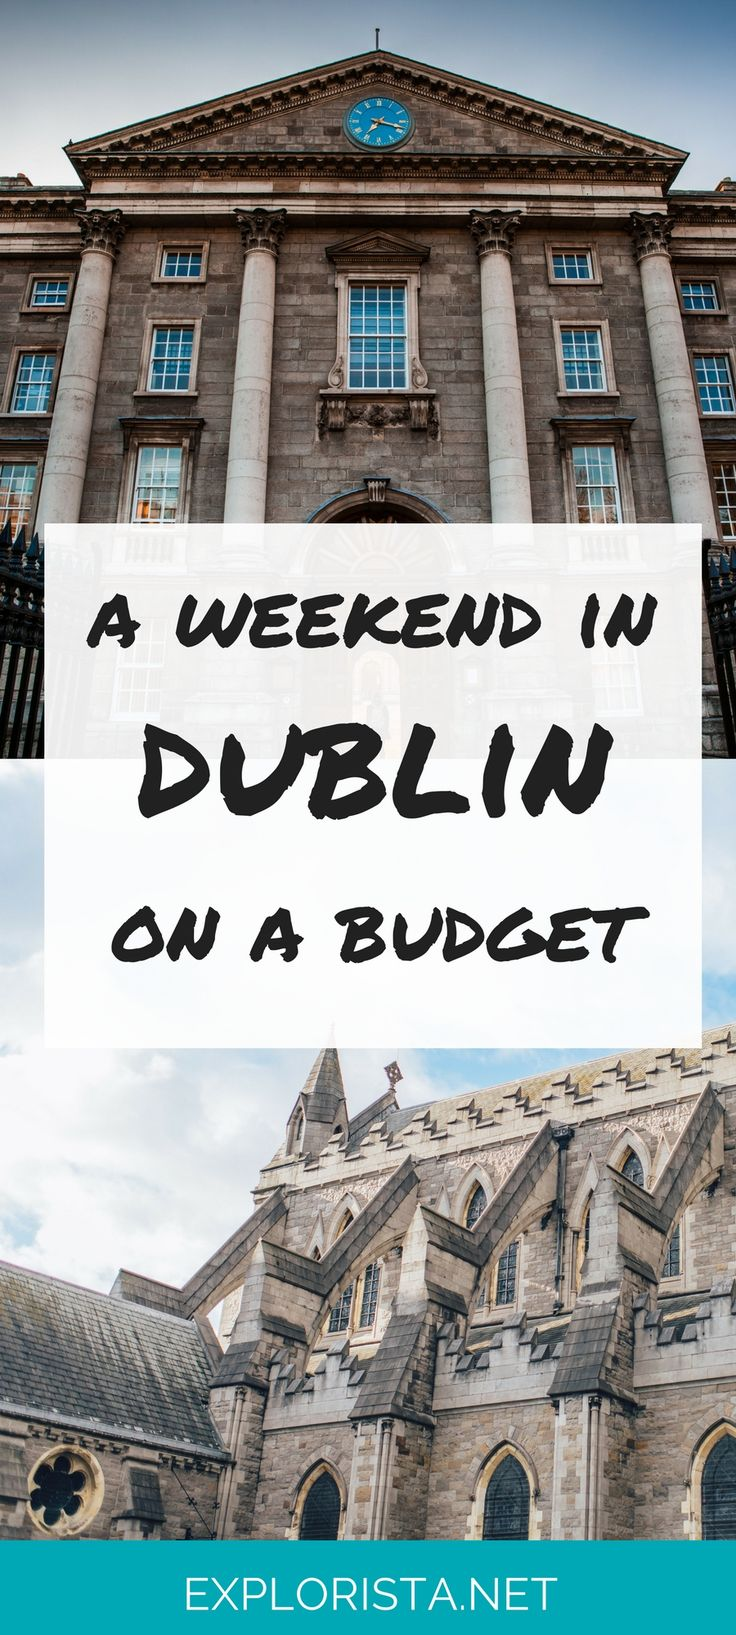 Just how much can you do in Dublin, Ireland in a weekend and on a budget? Find out here!